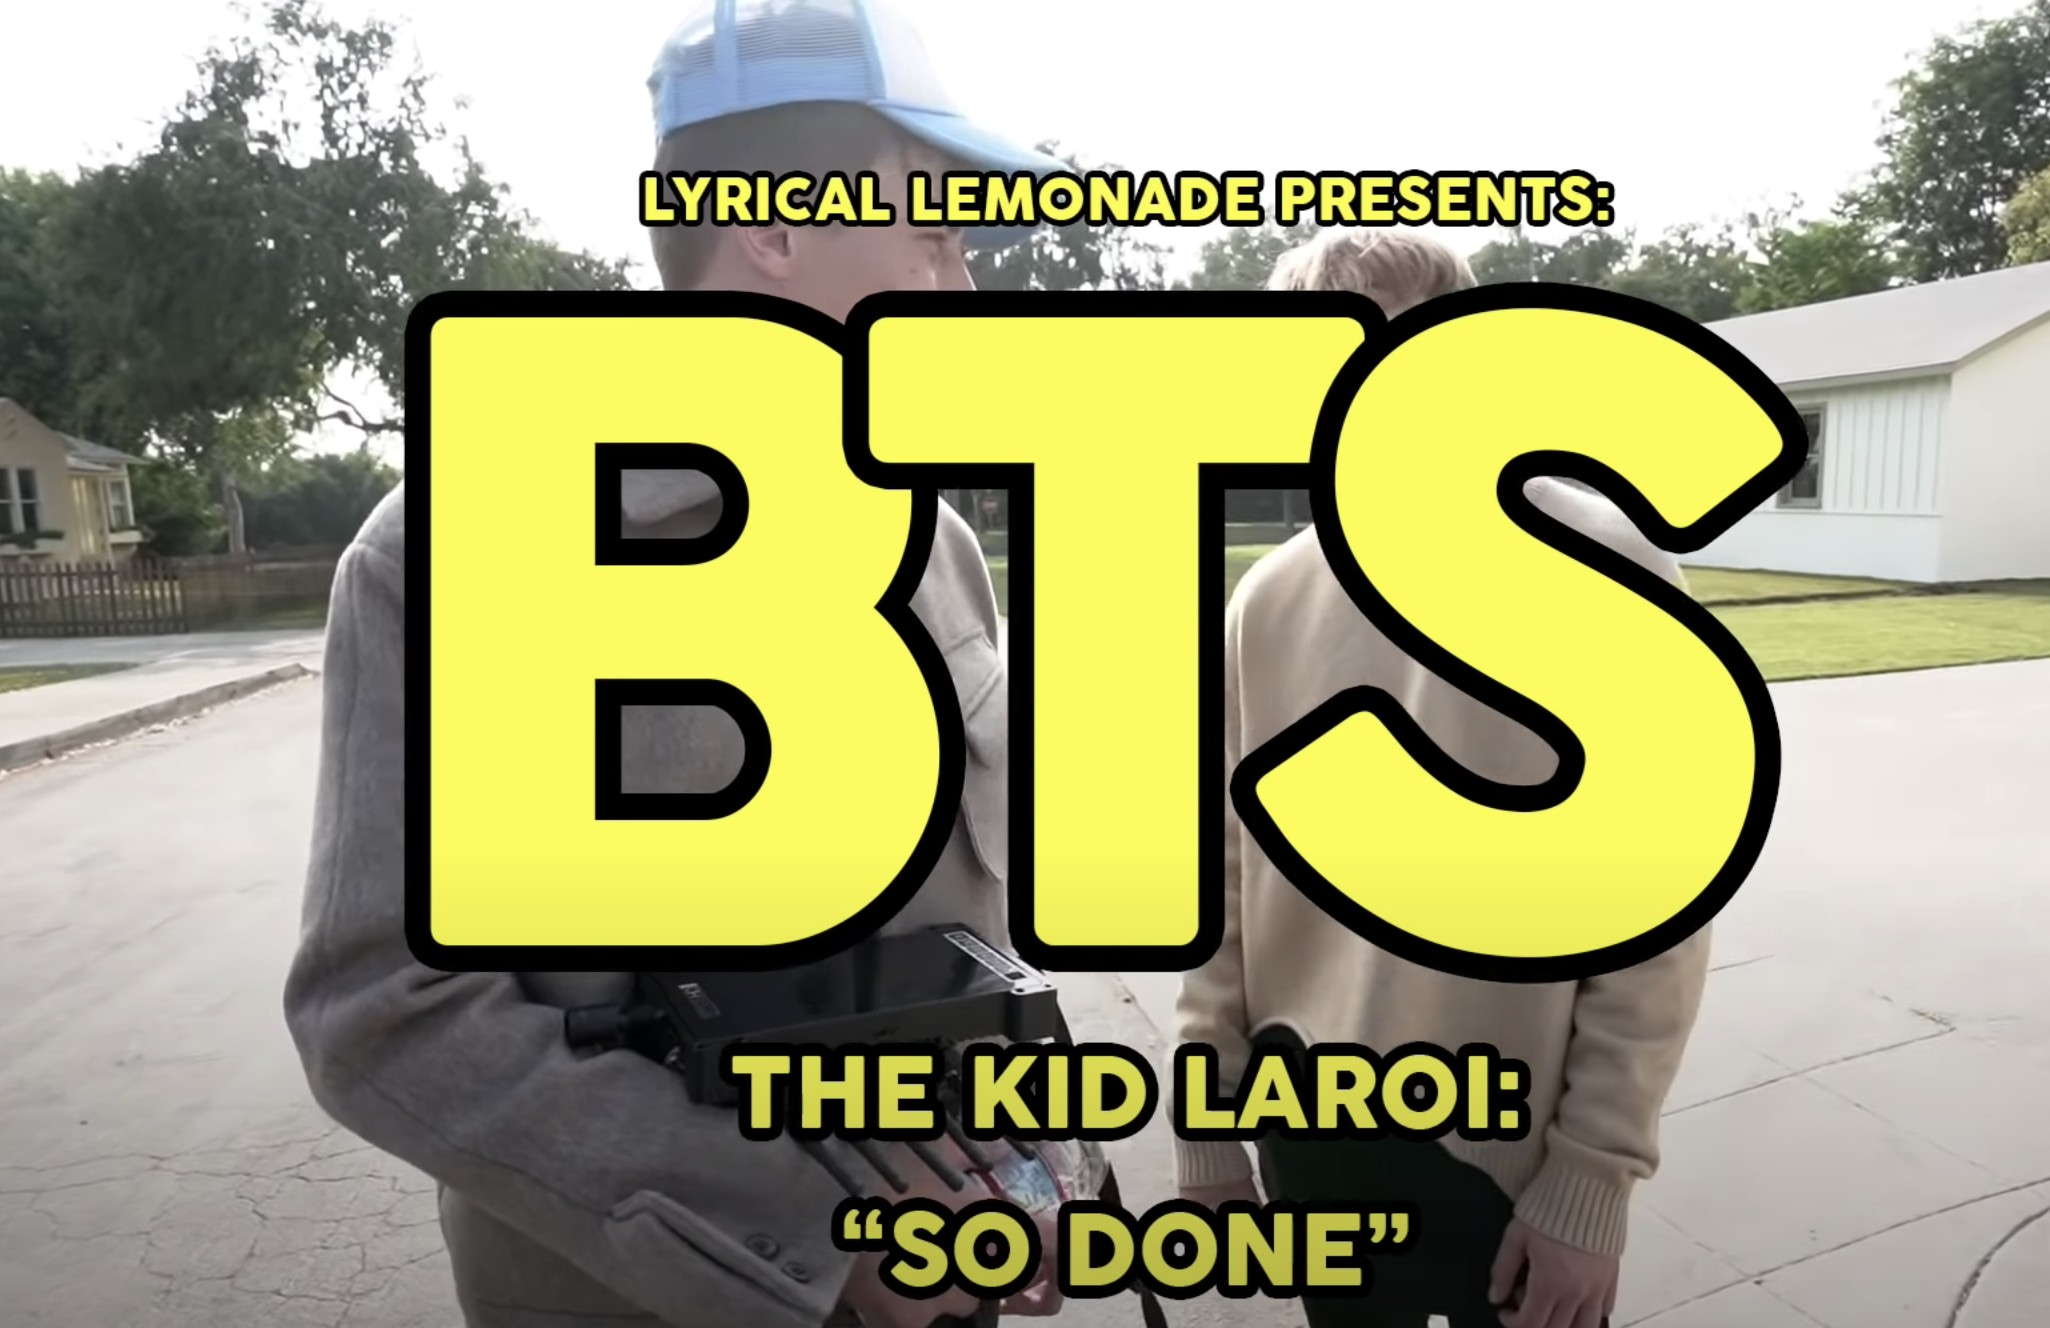 """Behind The Scenes of The Kid LAROI's """"So Done"""" Video Shoot"""